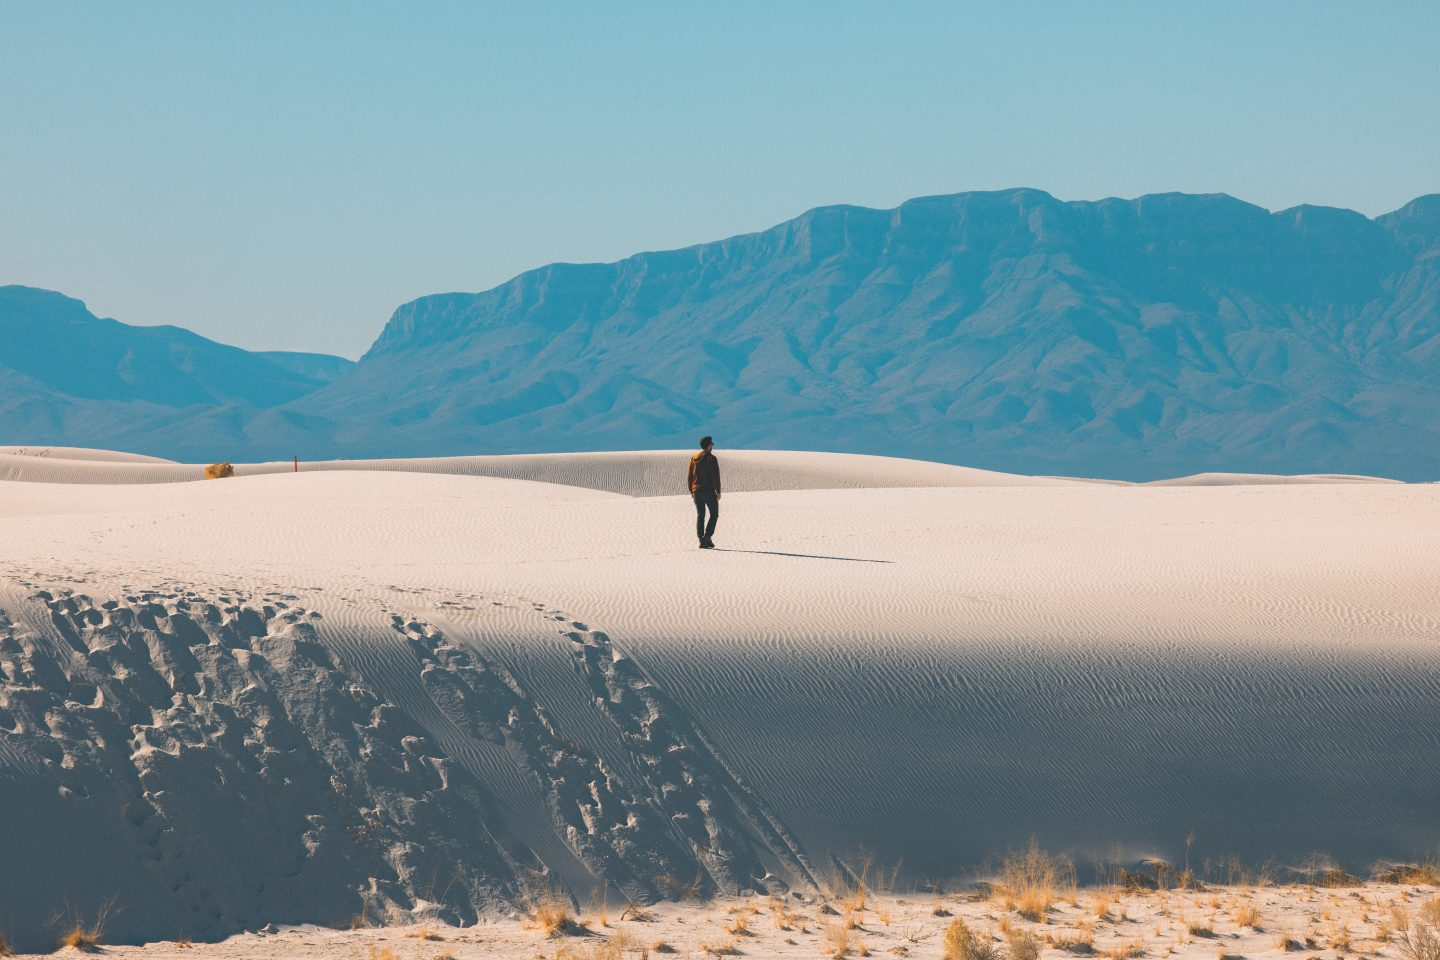 a man walking on sand in the dunes, nature shot